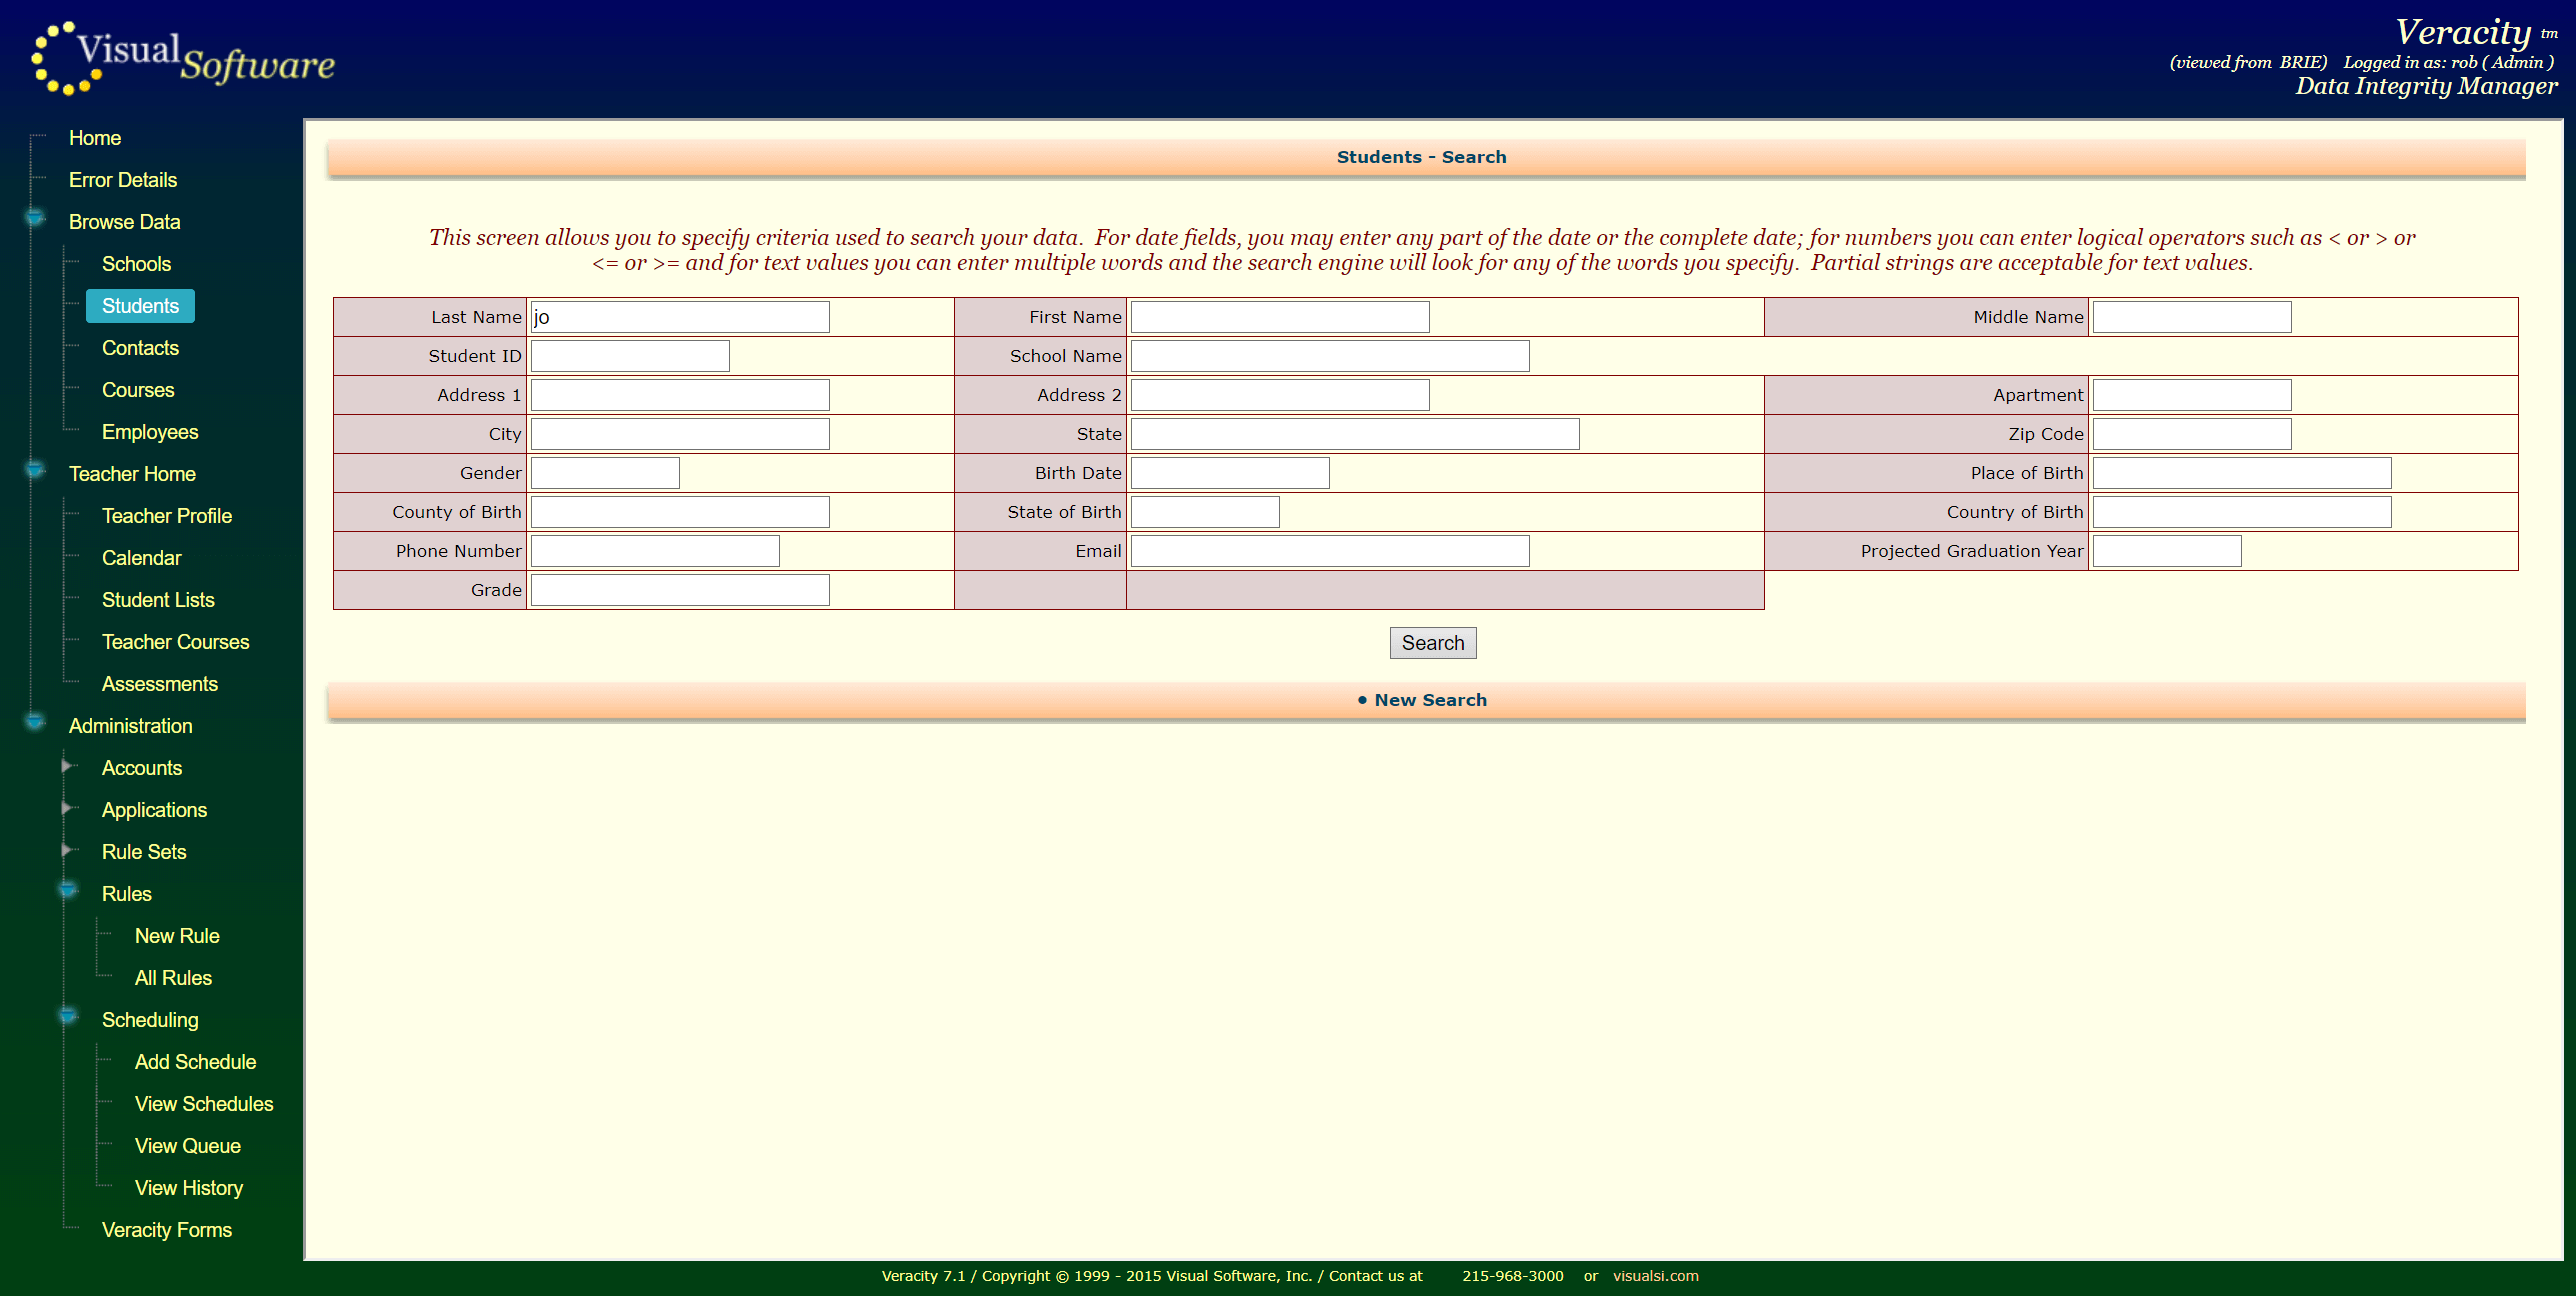 VeracityForms02 - Veracity - Consolidation Agent and Integrity Manager